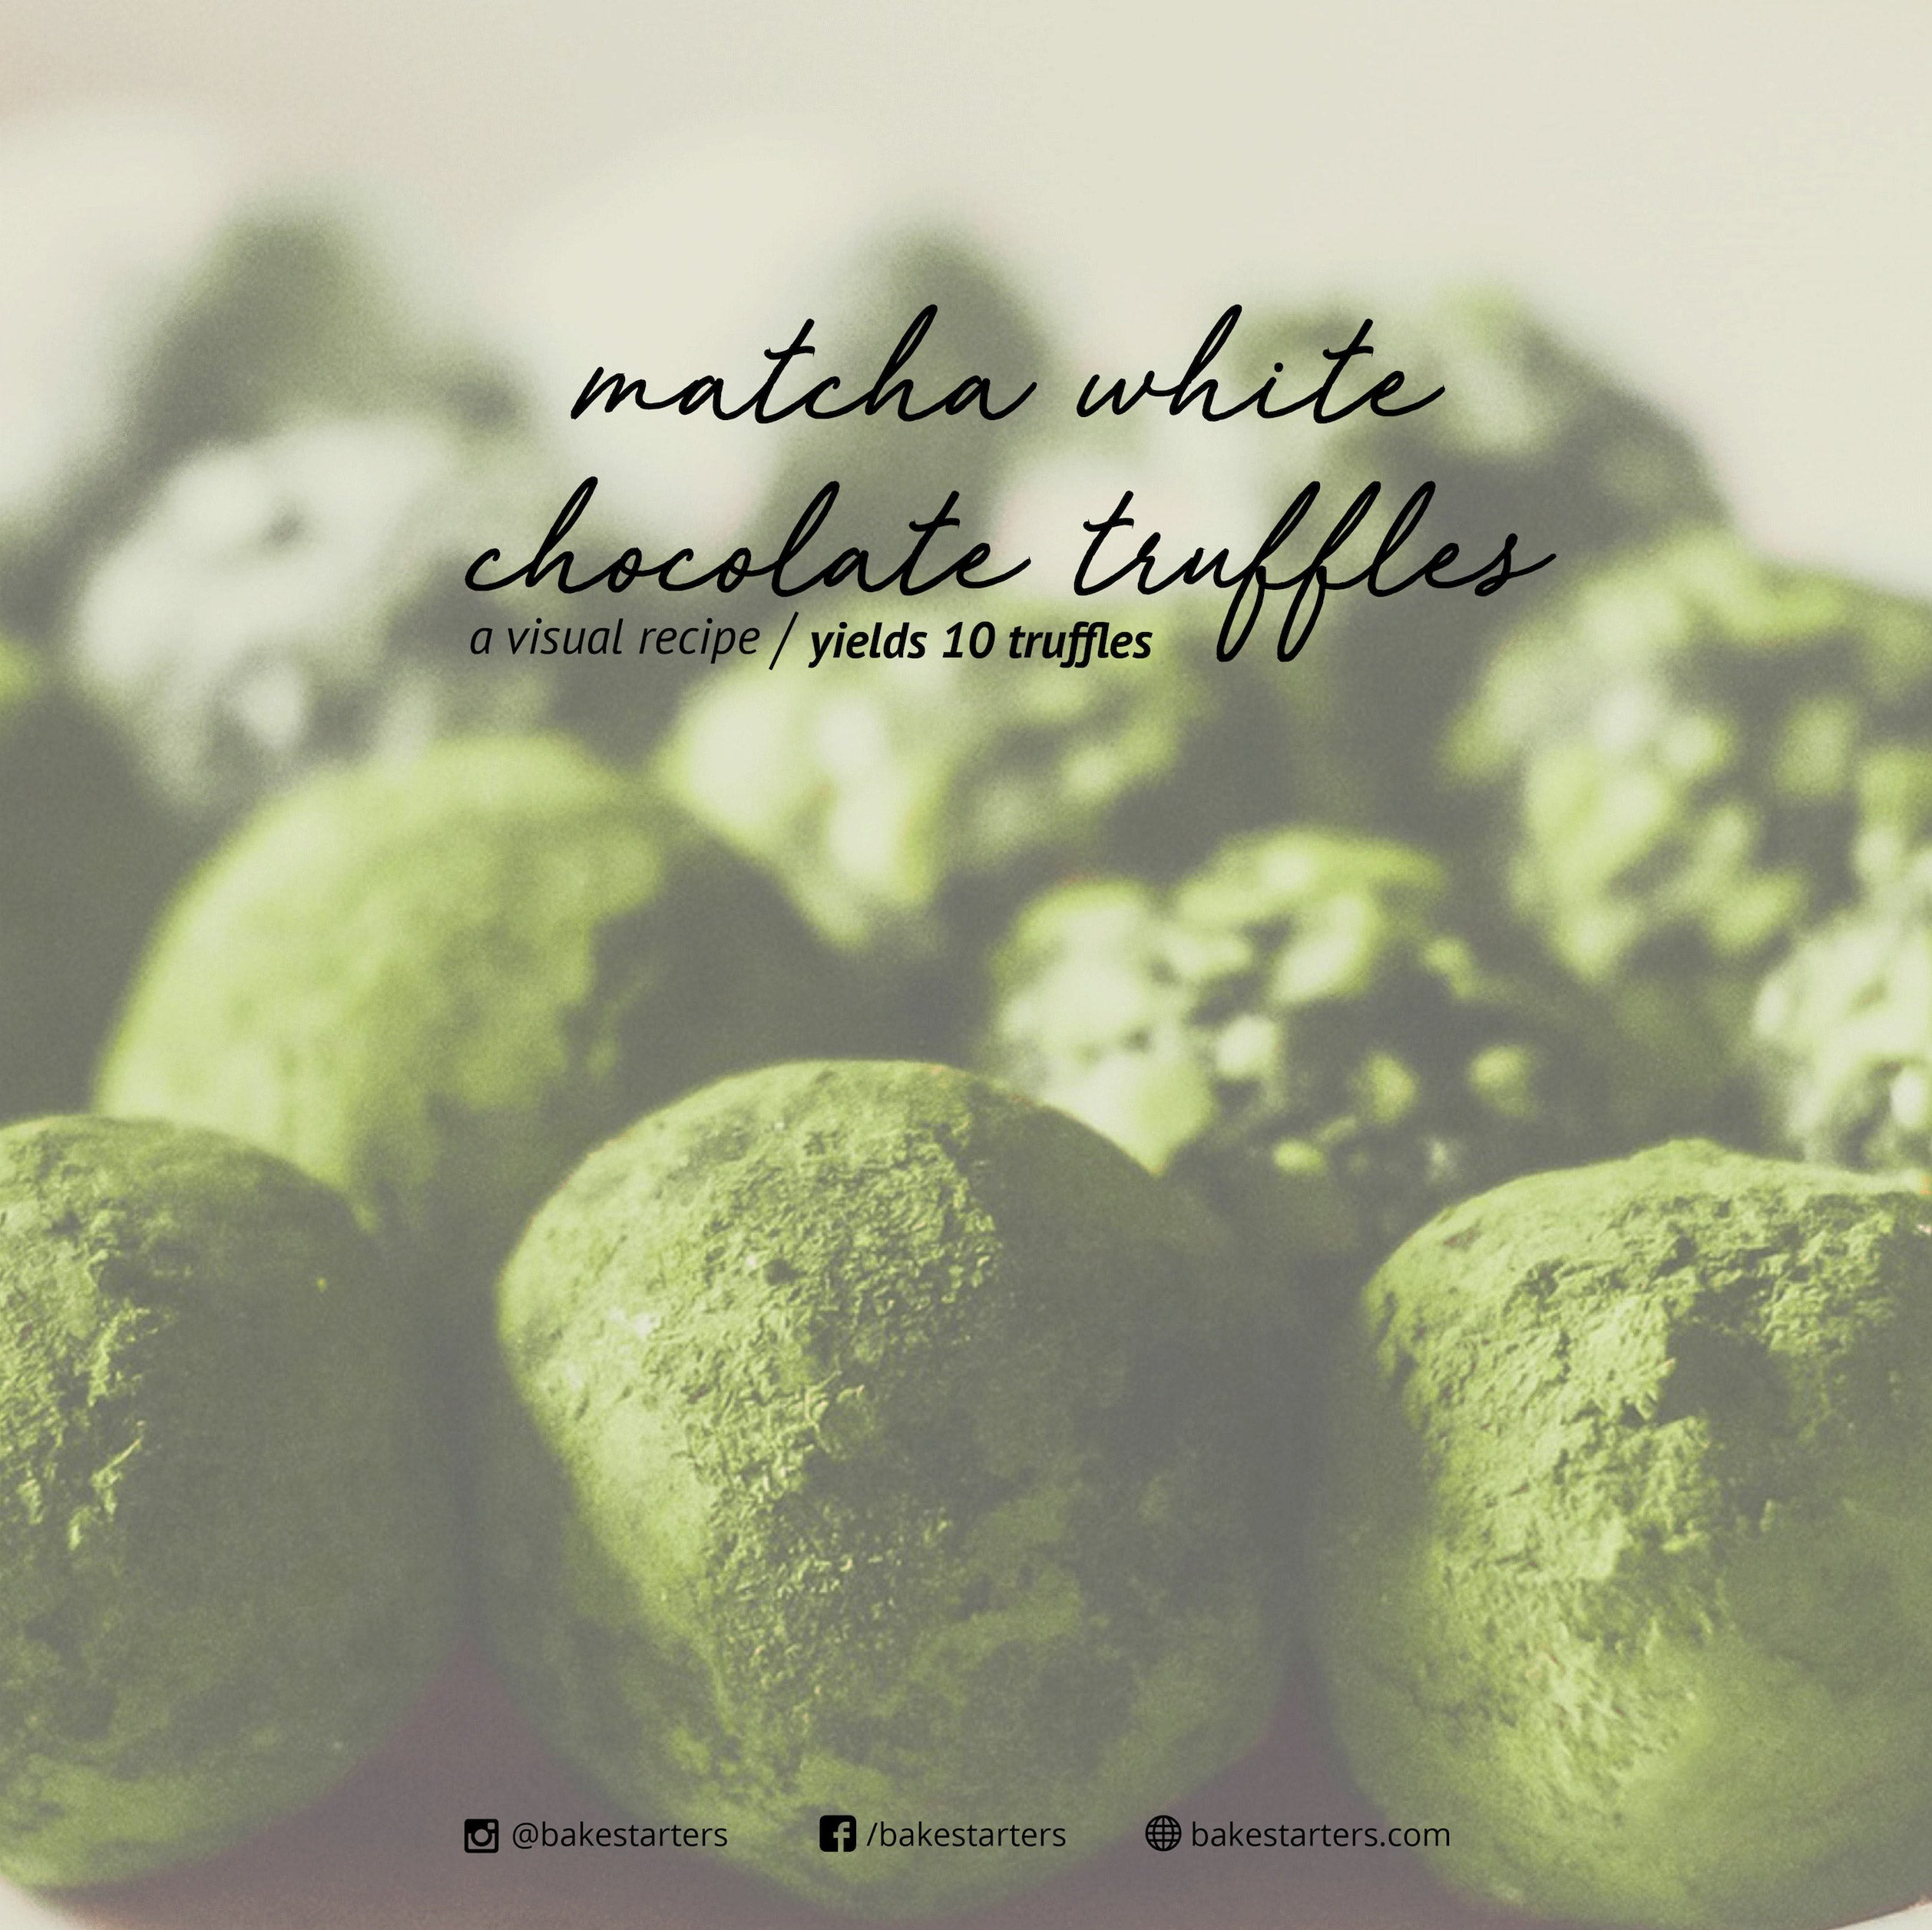 Matcha White Chocolate Truffles Recipe